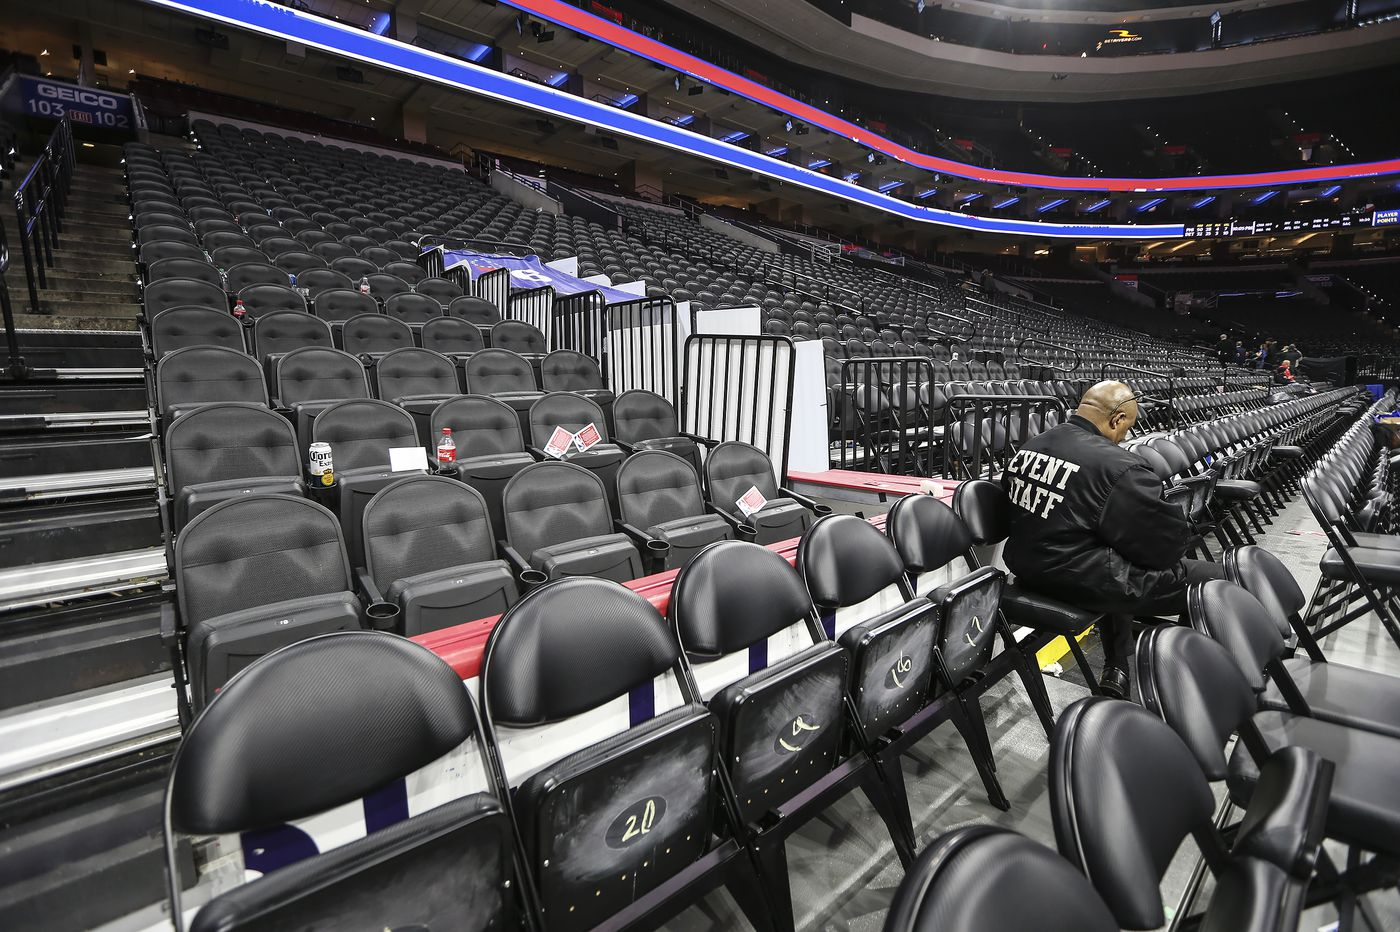 Flyers await NHL's decision on season, scheduled to play in Tampa on Thursday